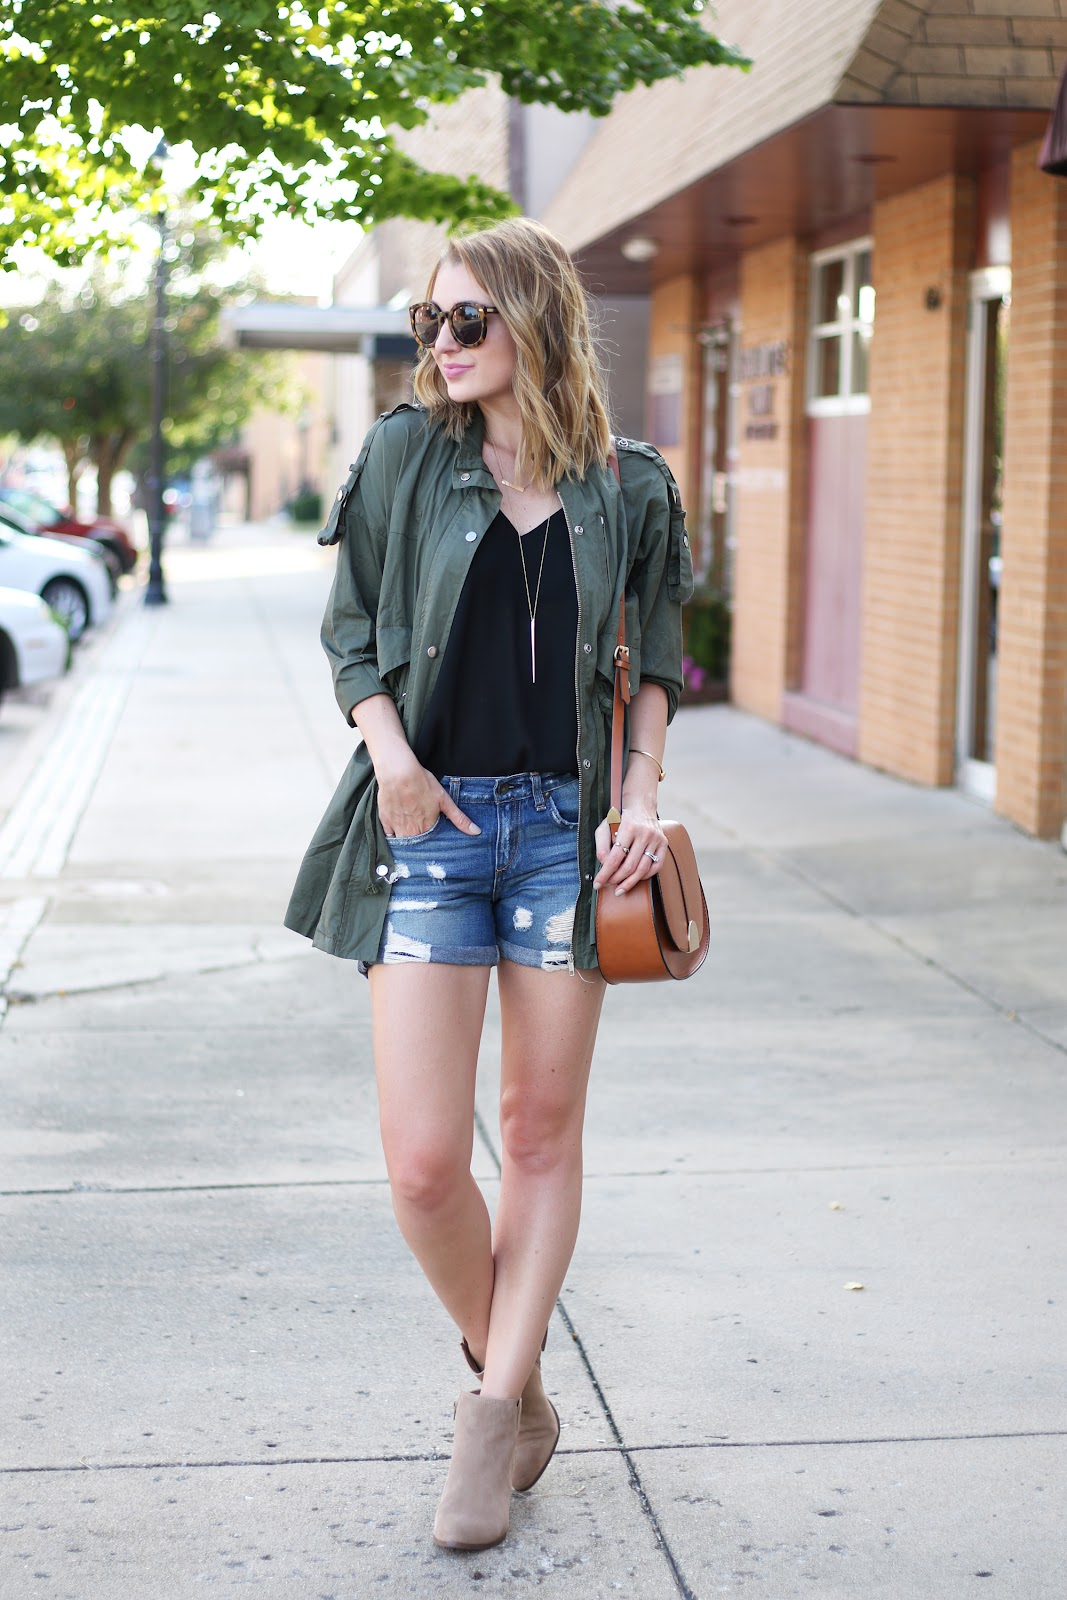 Rag & Bone Boyfriend Shorts + Military Jacket